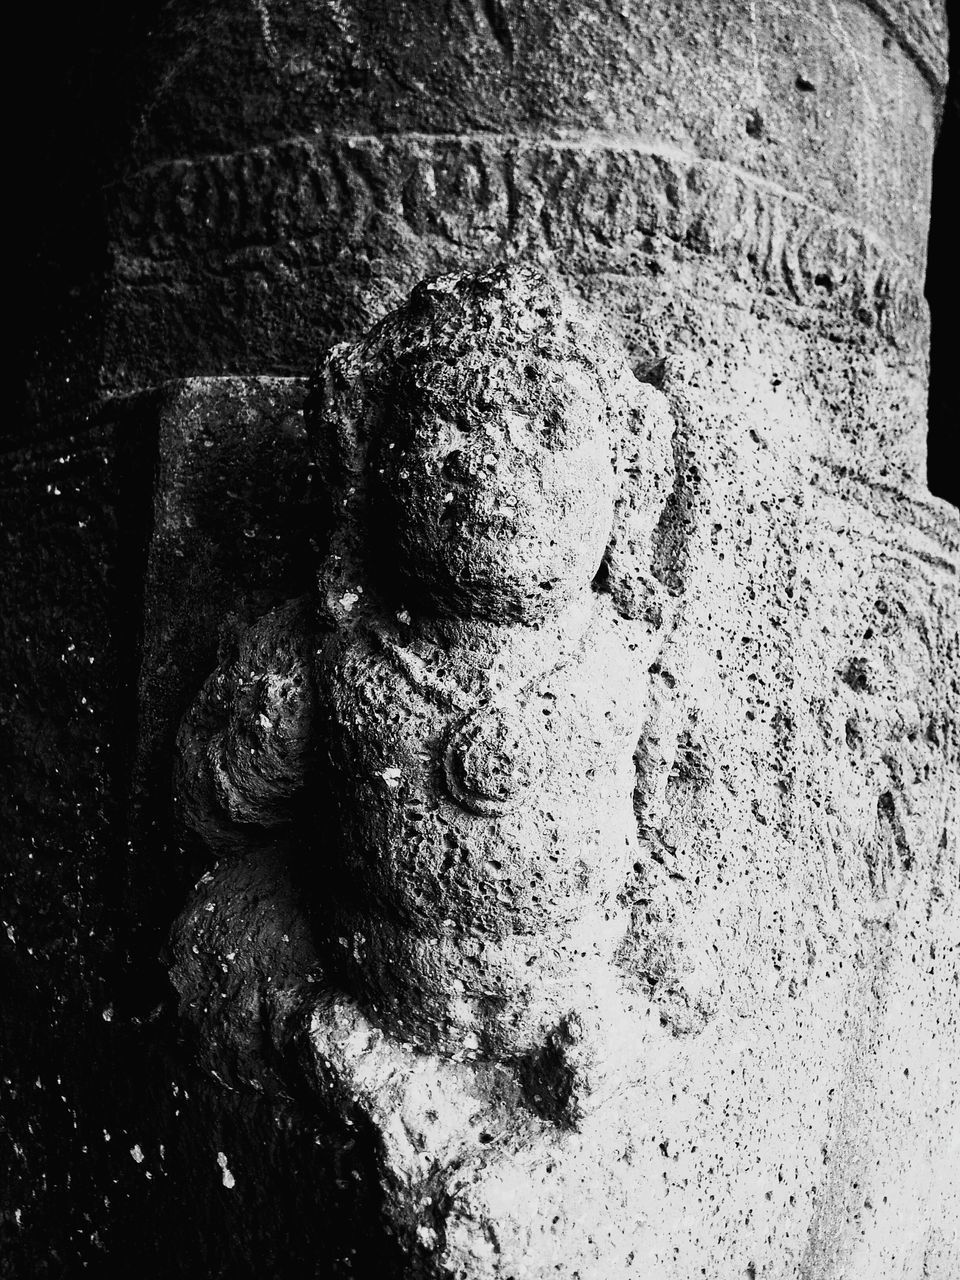 CLOSE-UP OF STATUE ON WALL